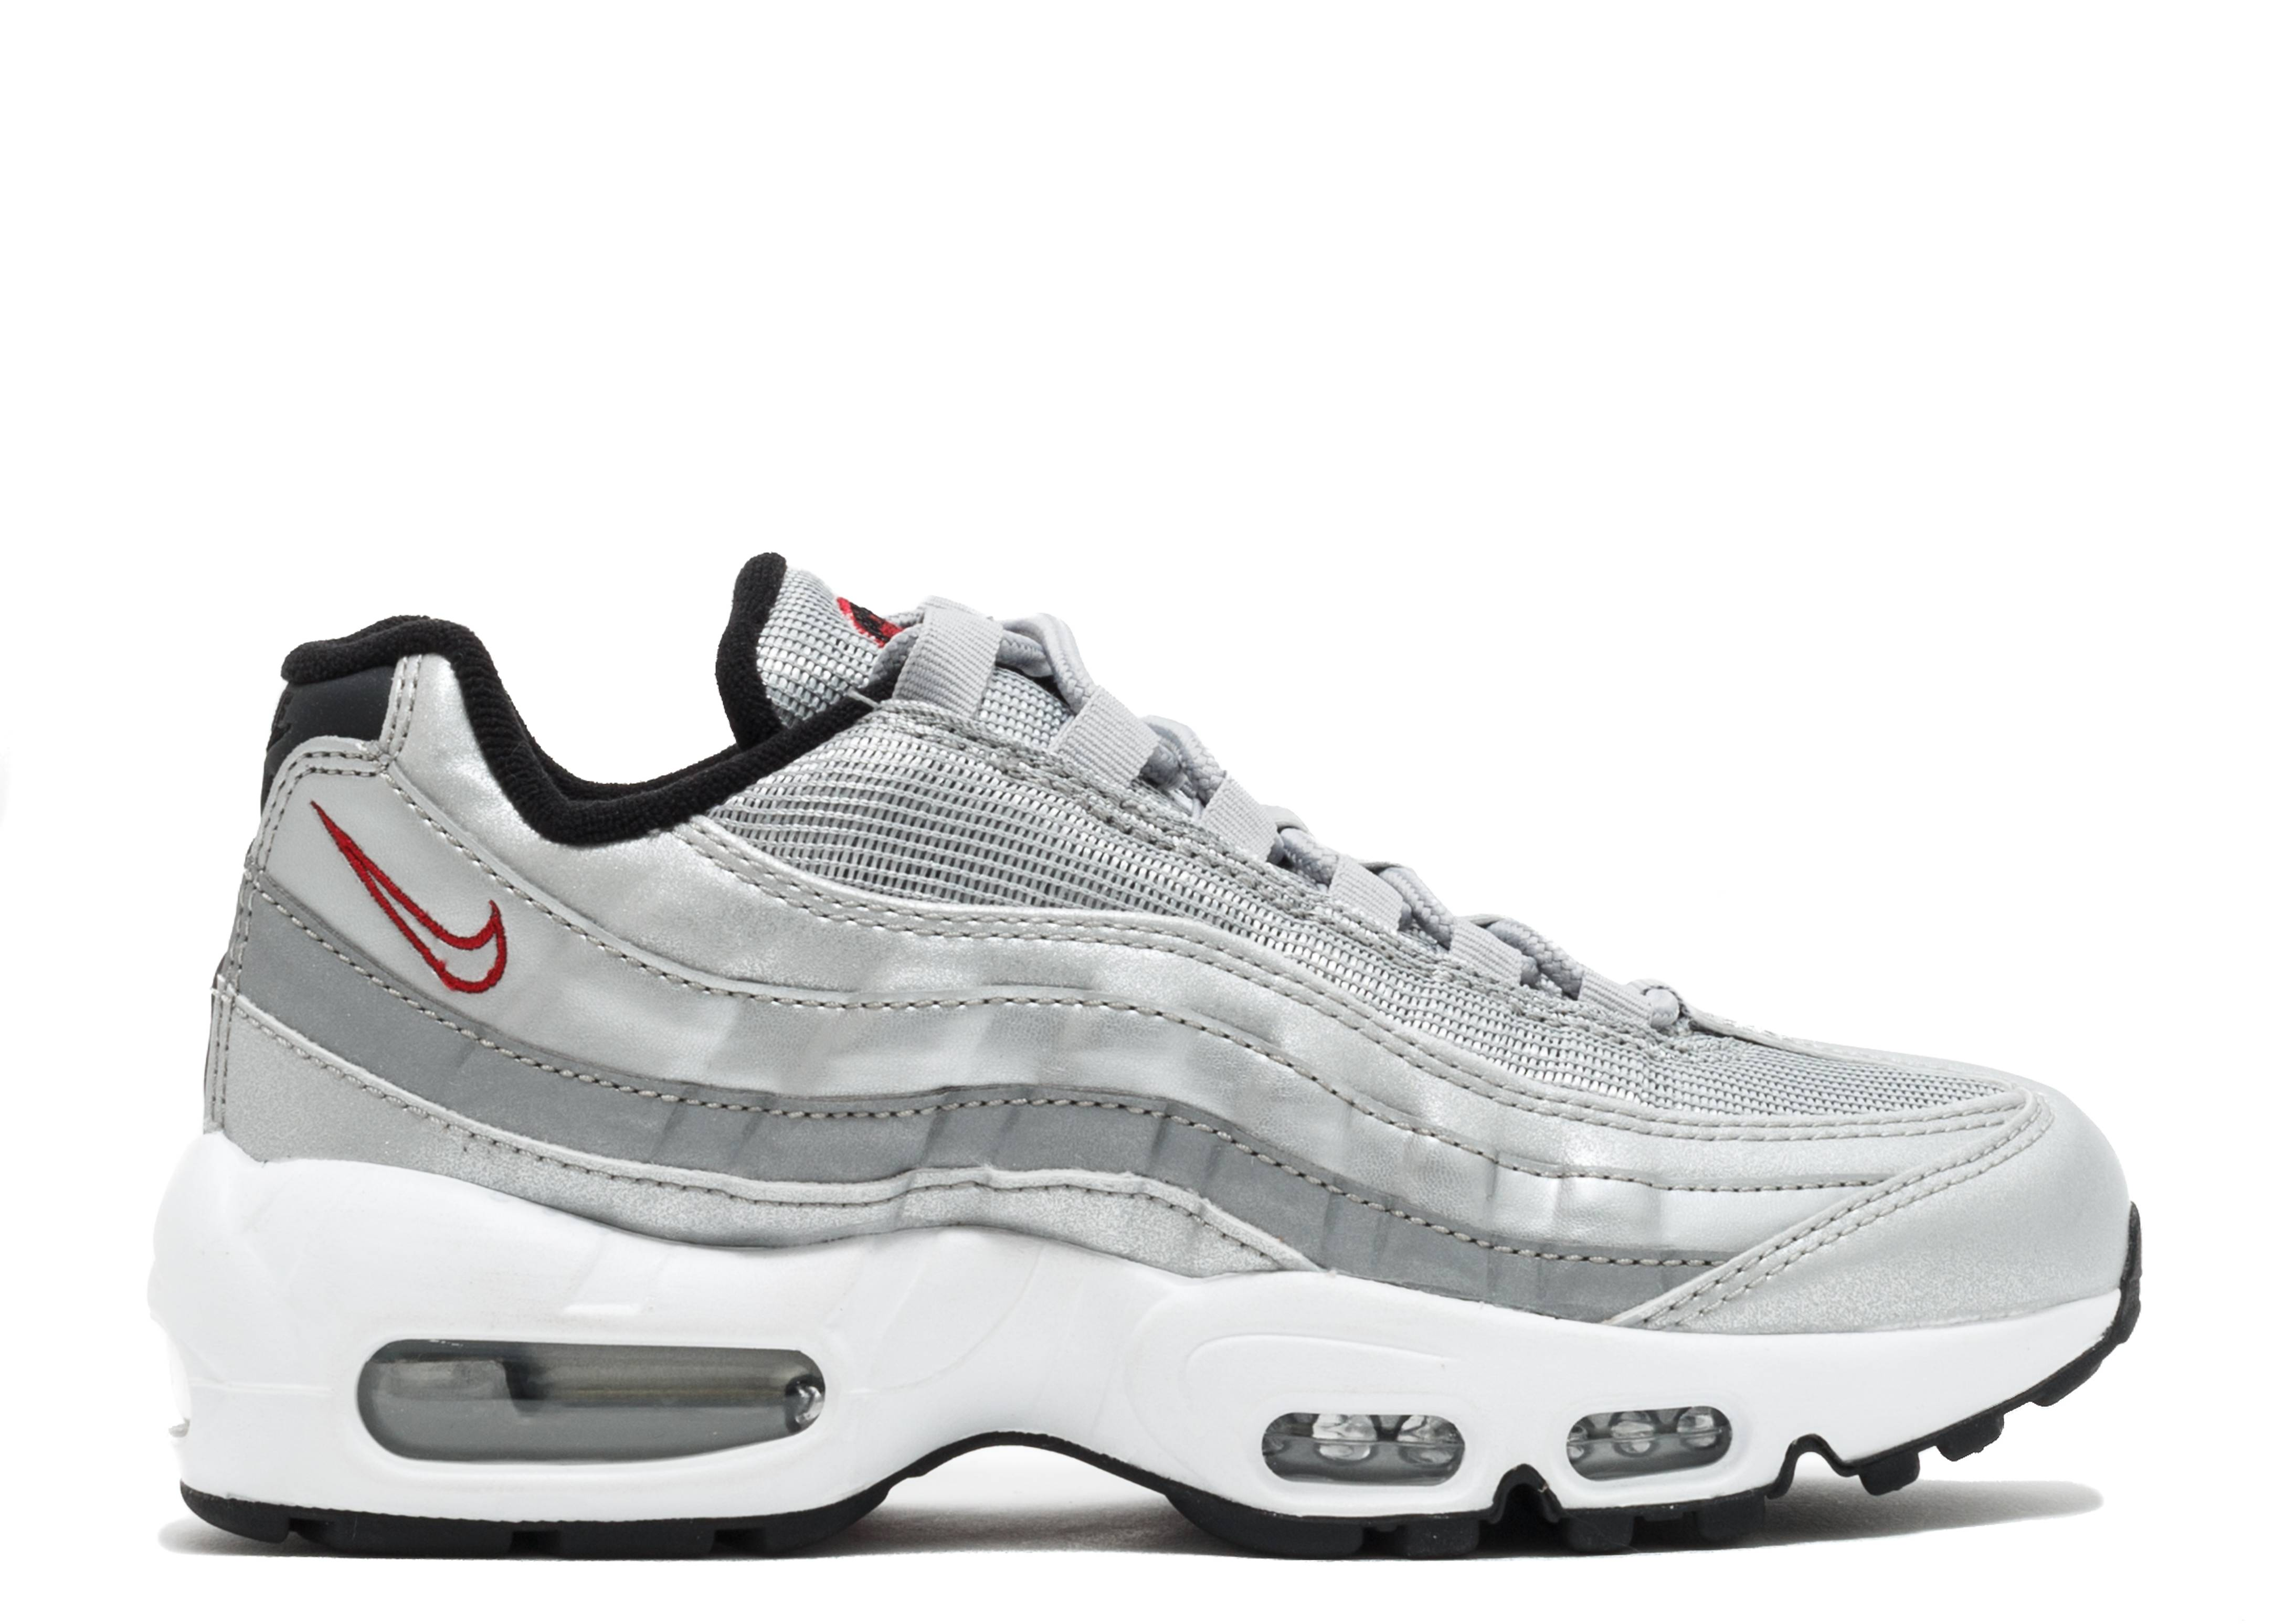 68be7a85a Wmns Air Max 95 Qs